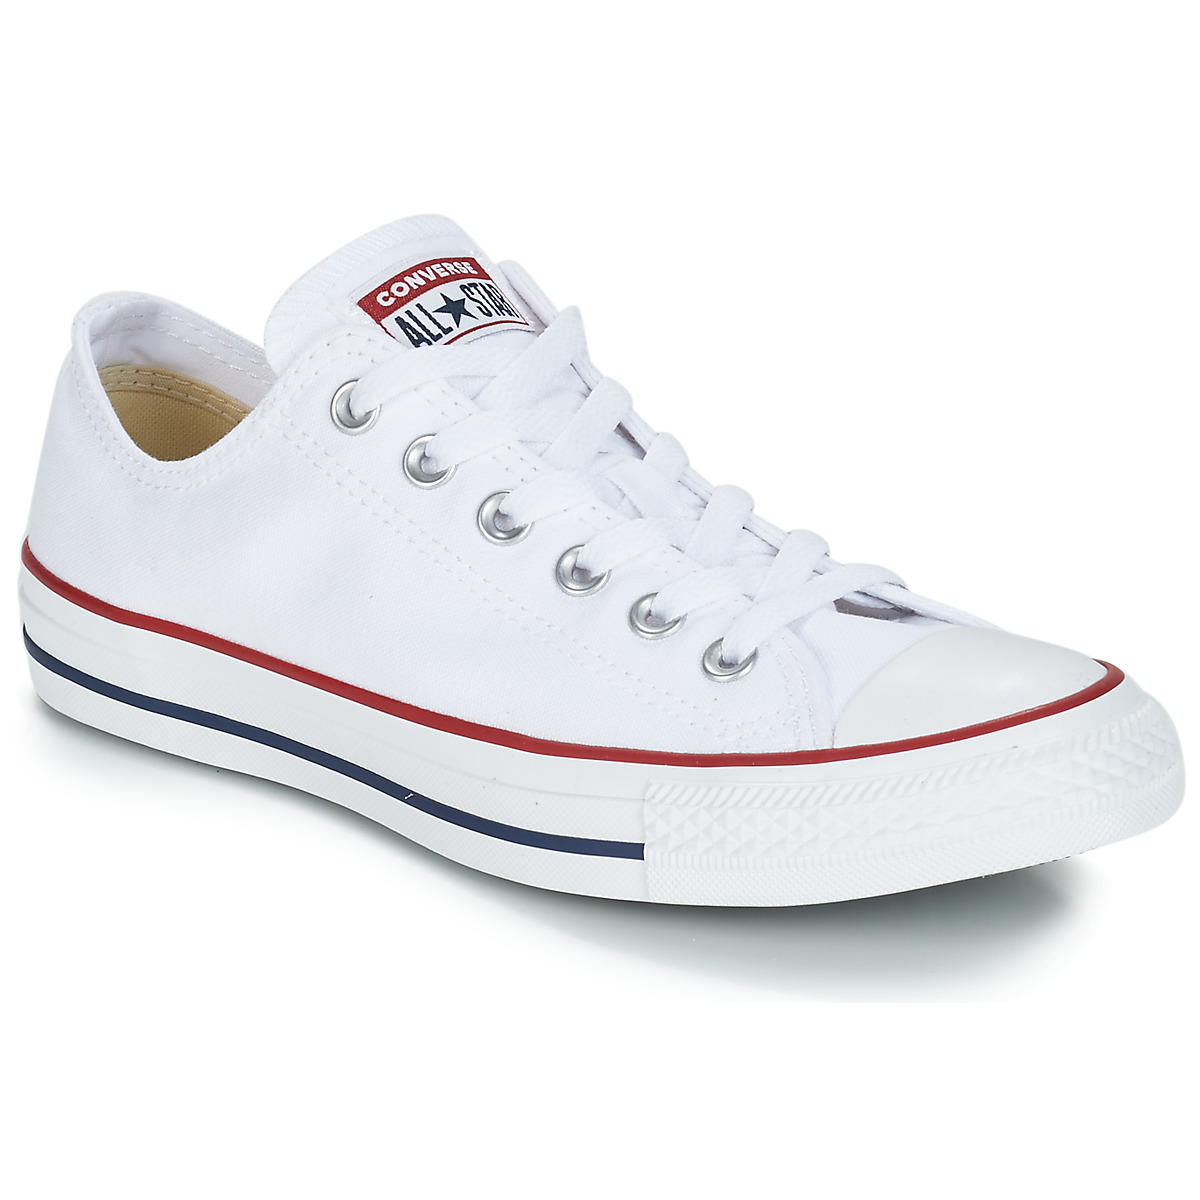 new style 6d614 1af6b Chaussures Baskets basses Converse CHUCK TAYLOR ALL STAR CORE OX Blanc  Optical